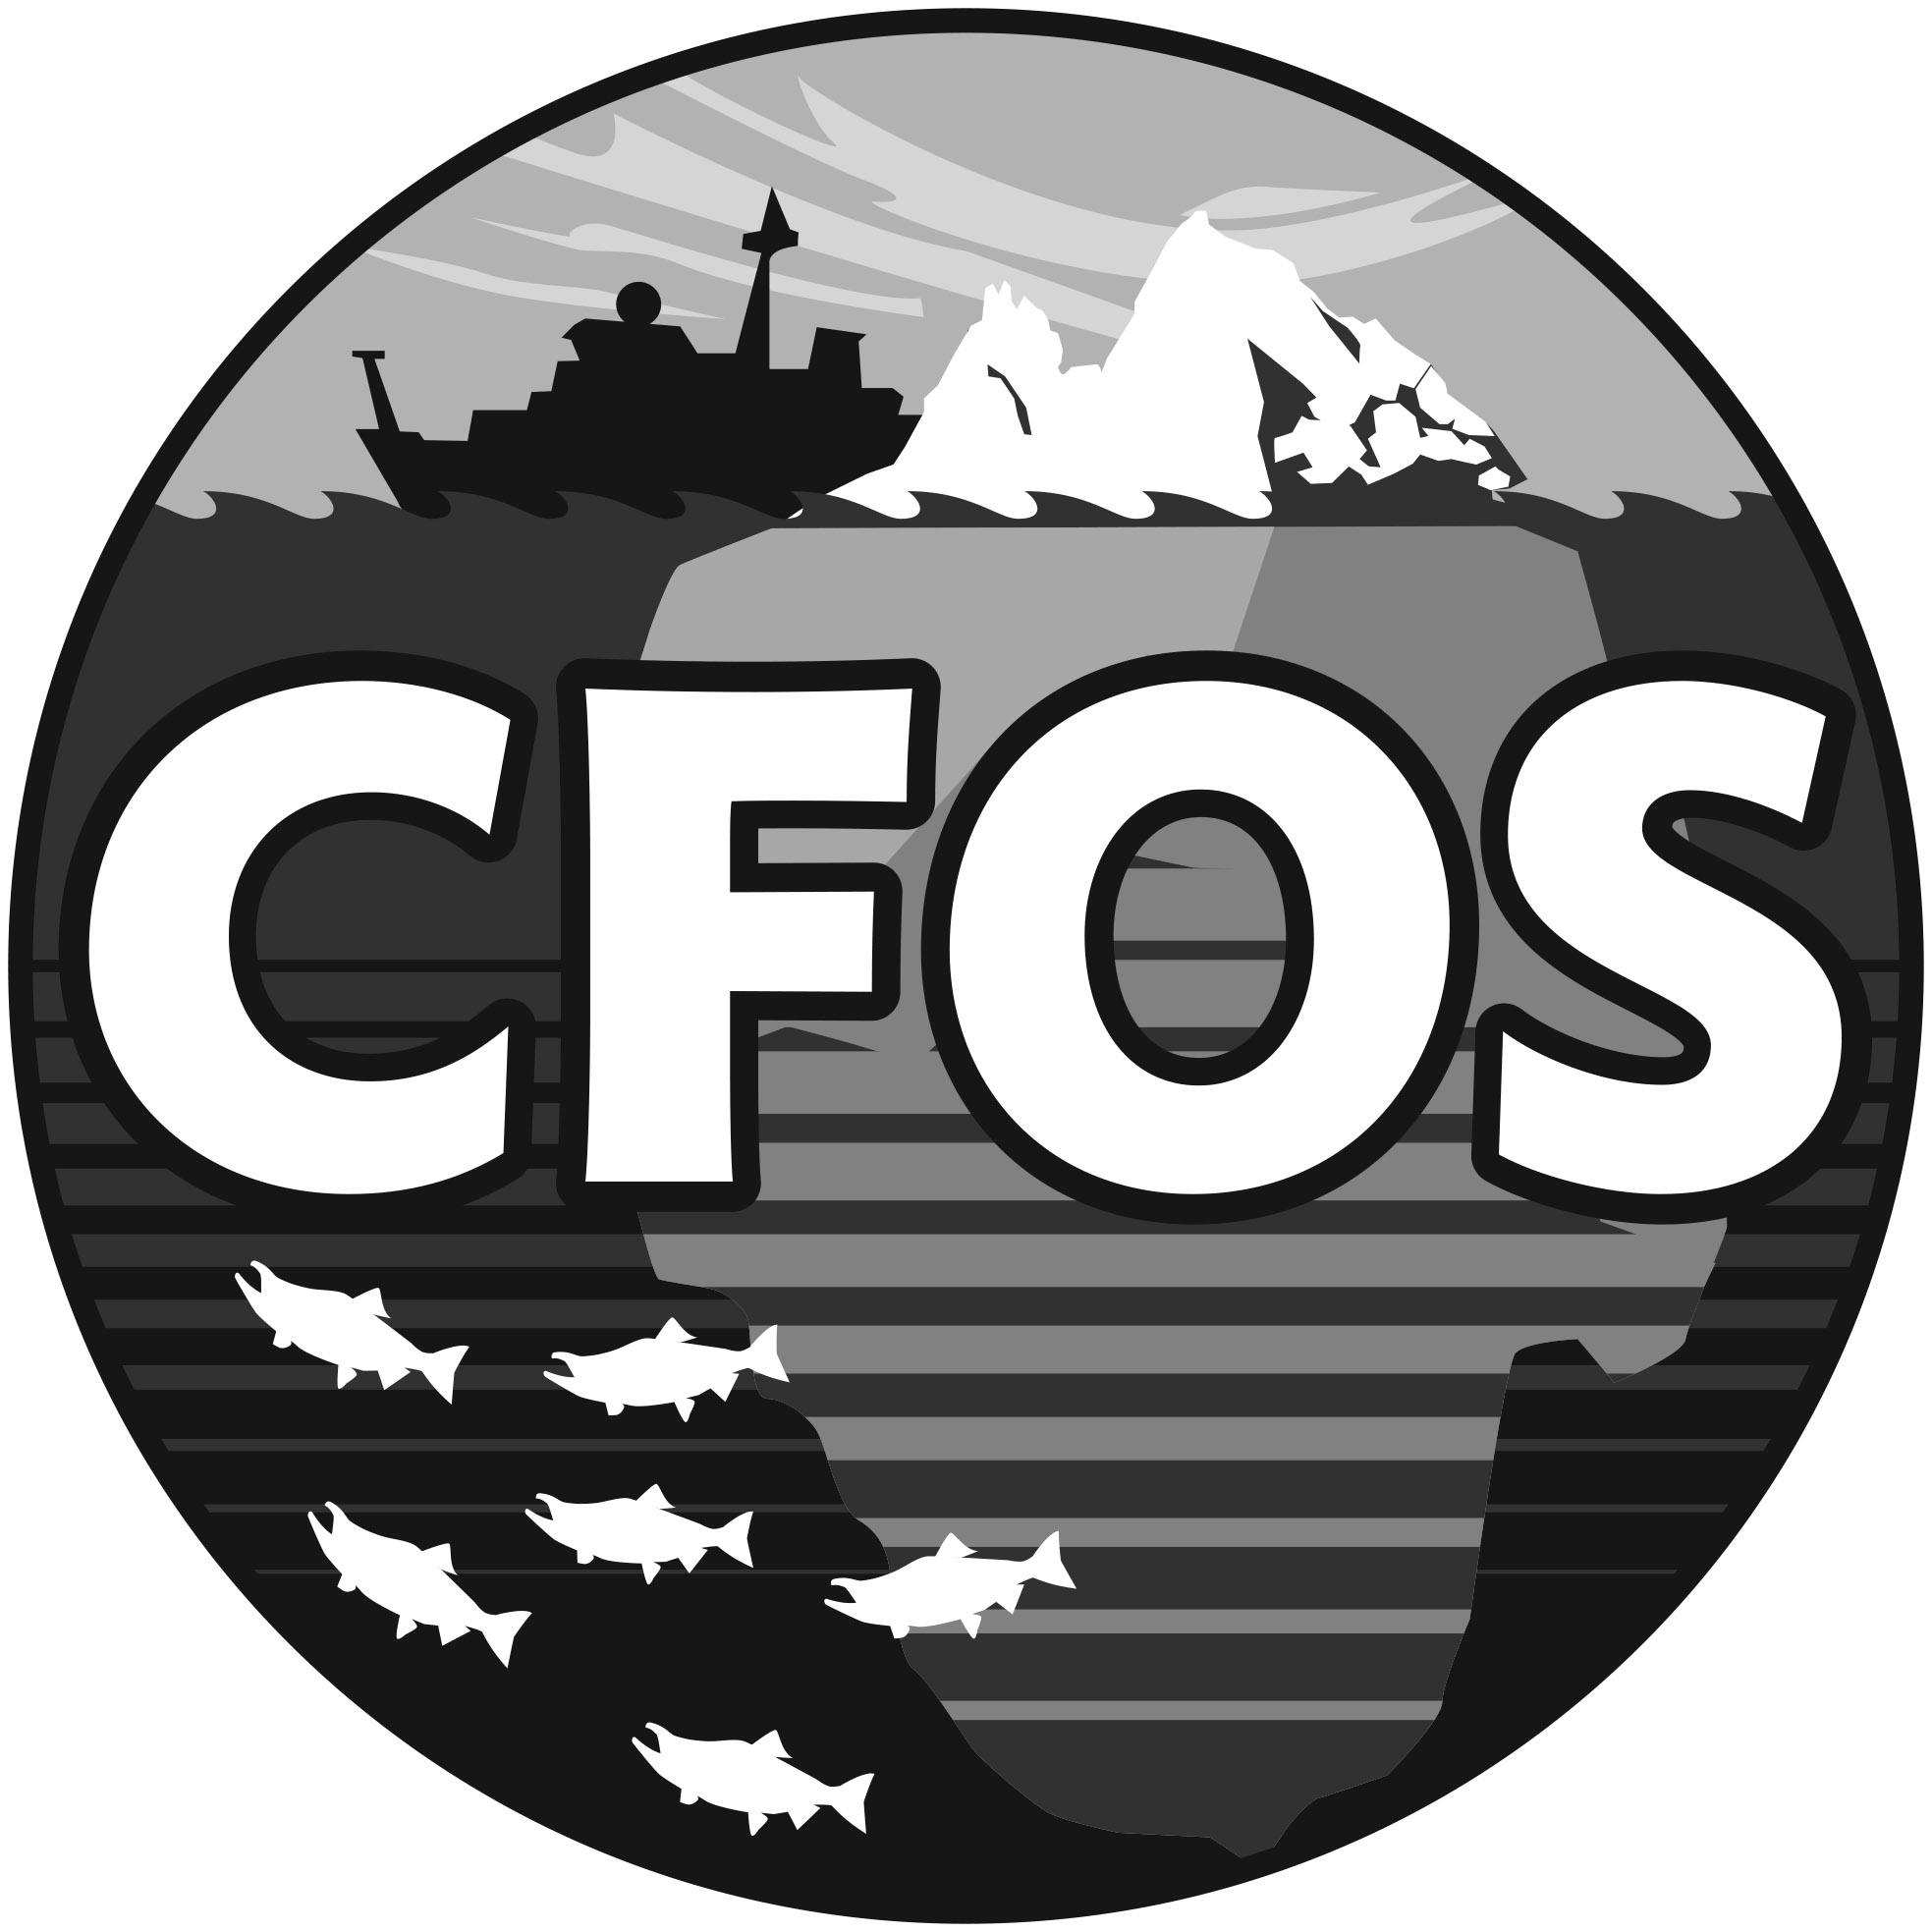 CFOS graphic - Gray logo